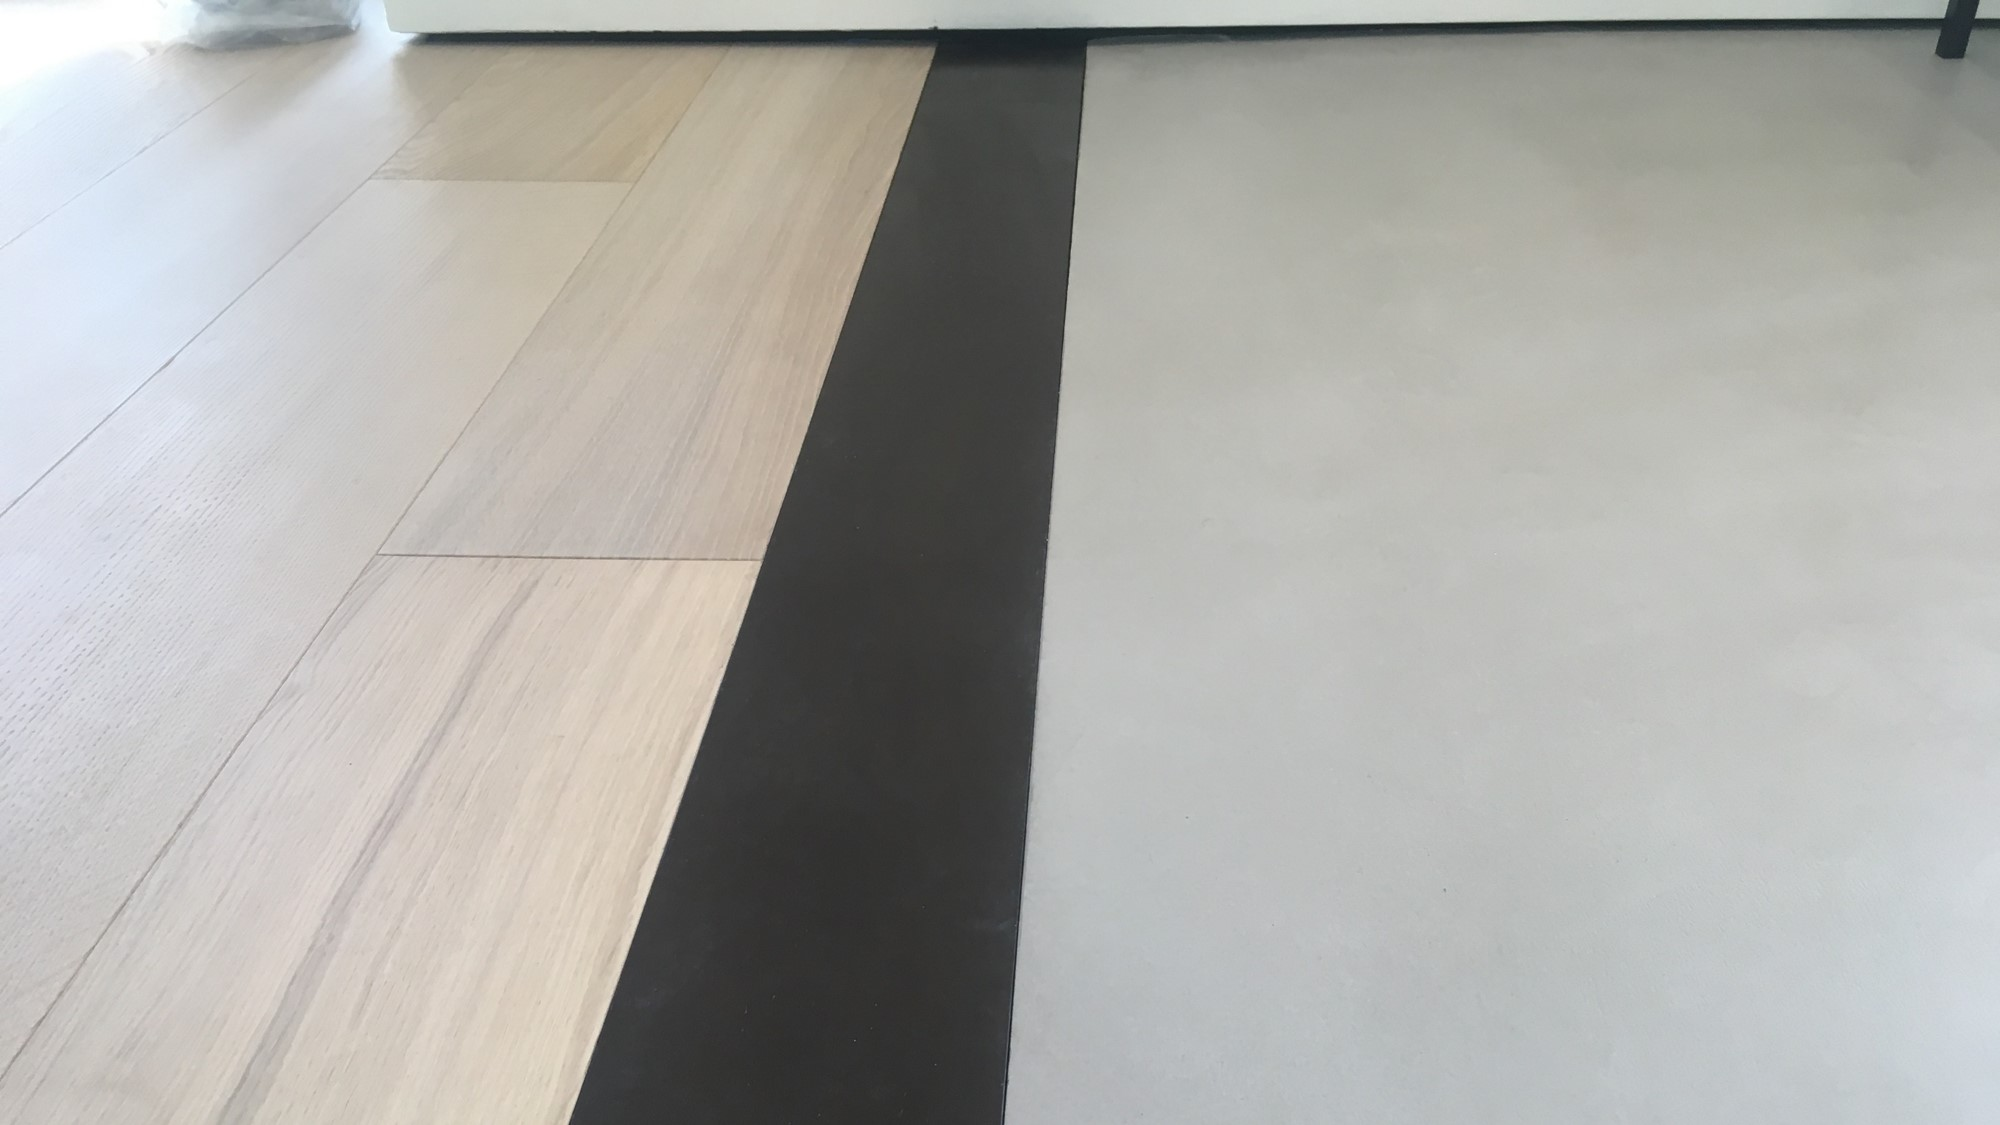 Polished concrete microtopping floors meets wooden floors at luxury apartment in London Marylebone by Polished Concrete Specialists